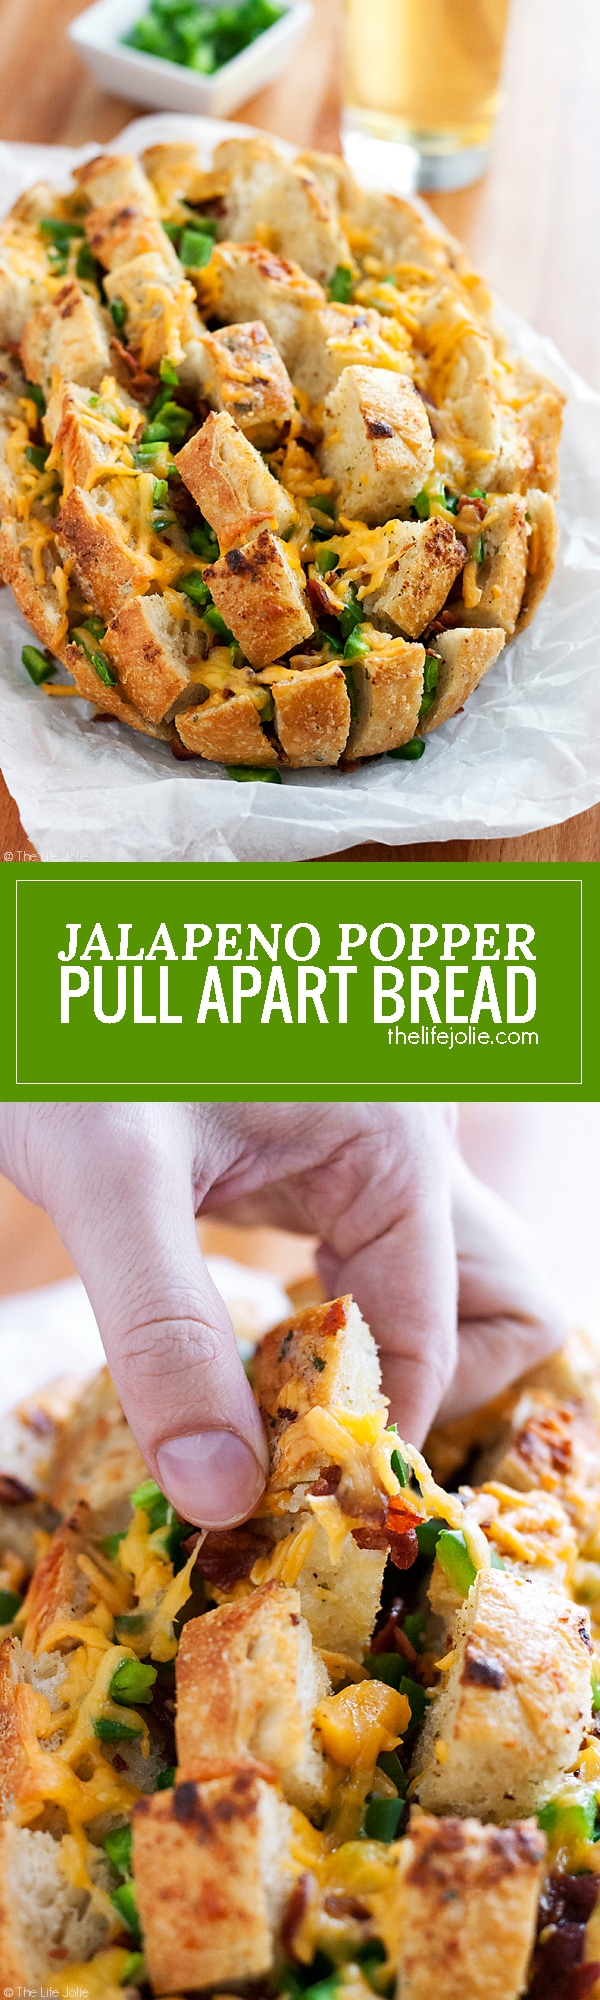 This cheesy Jalapeno Popper Pull Apart Bread is an easy recipe for game day! A loaf of bread stuffed with jalapenos, cheese and bacon; it's super quick to throw together and is sure to be a hit at your next Superbowl Party!